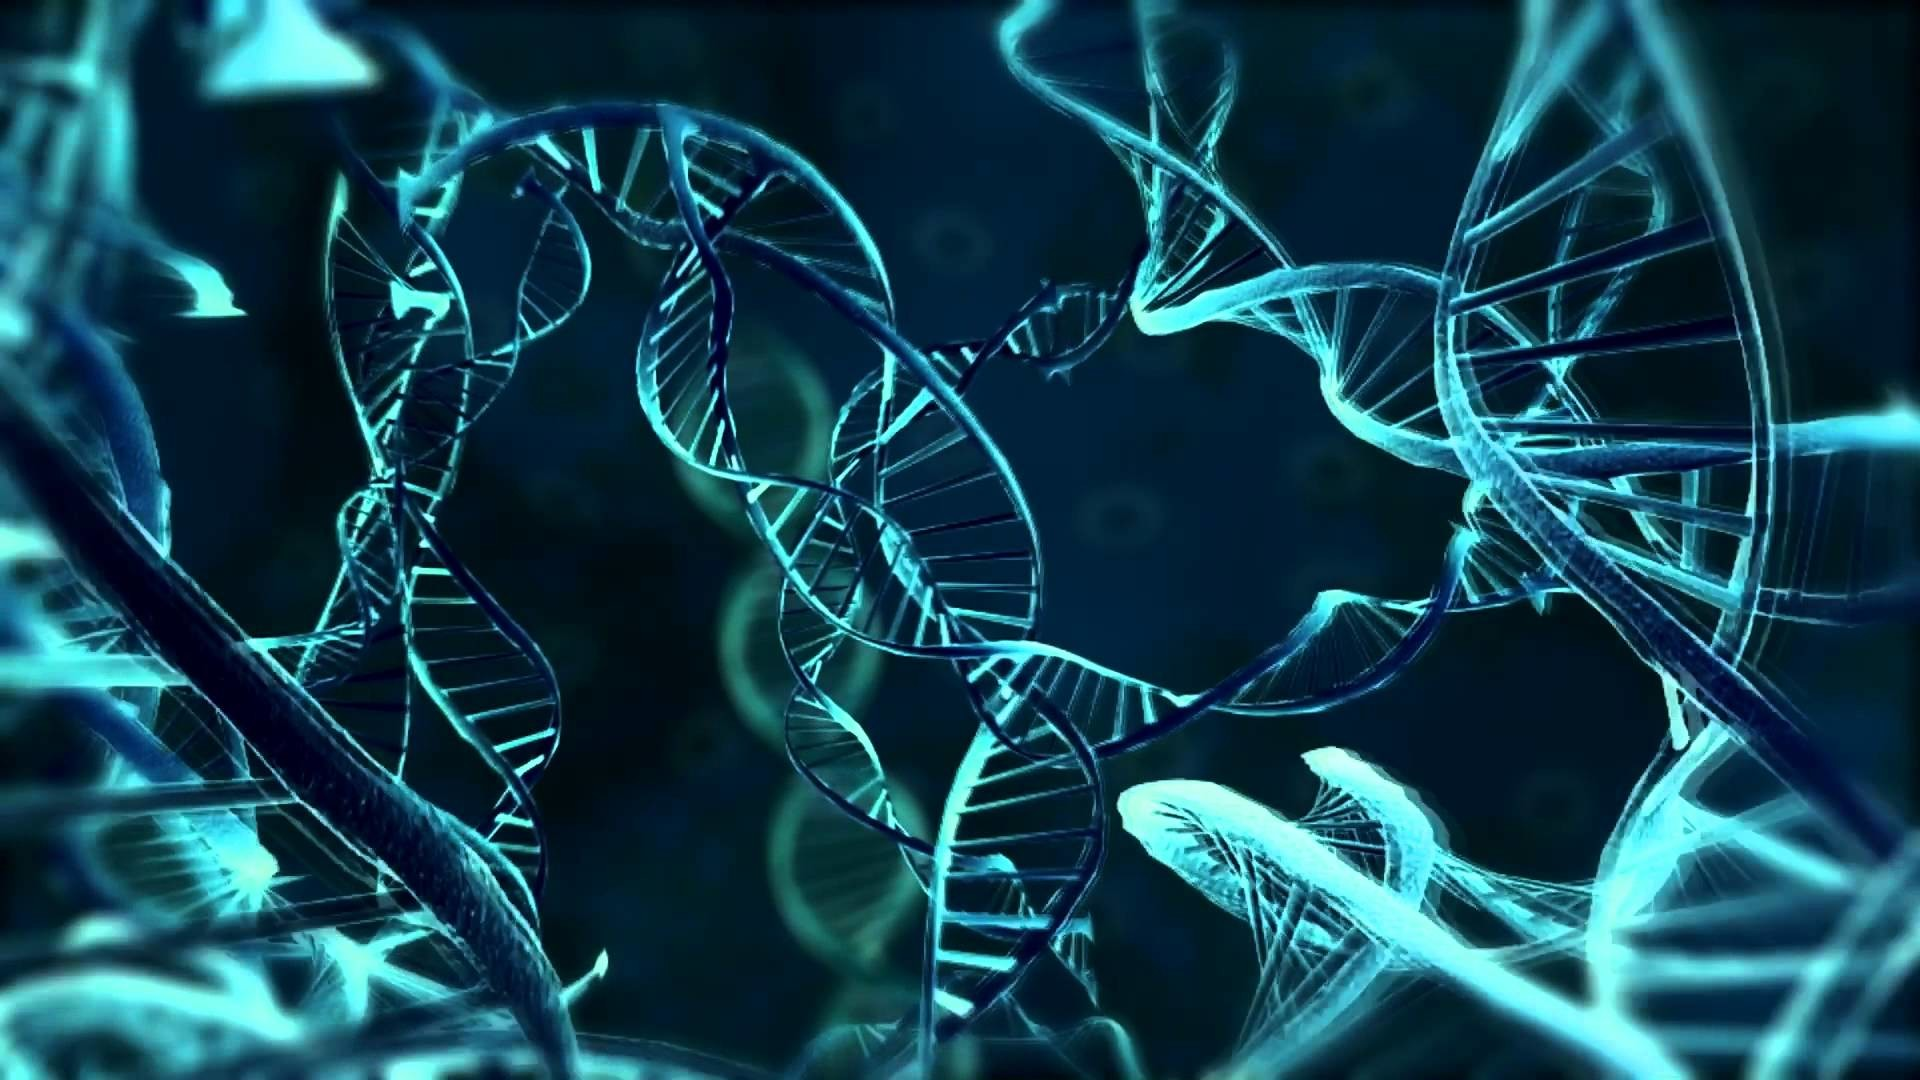 Biochemistry Wallpapers High Resolution: Scientific DNA Wallpapers ·① WallpaperTag